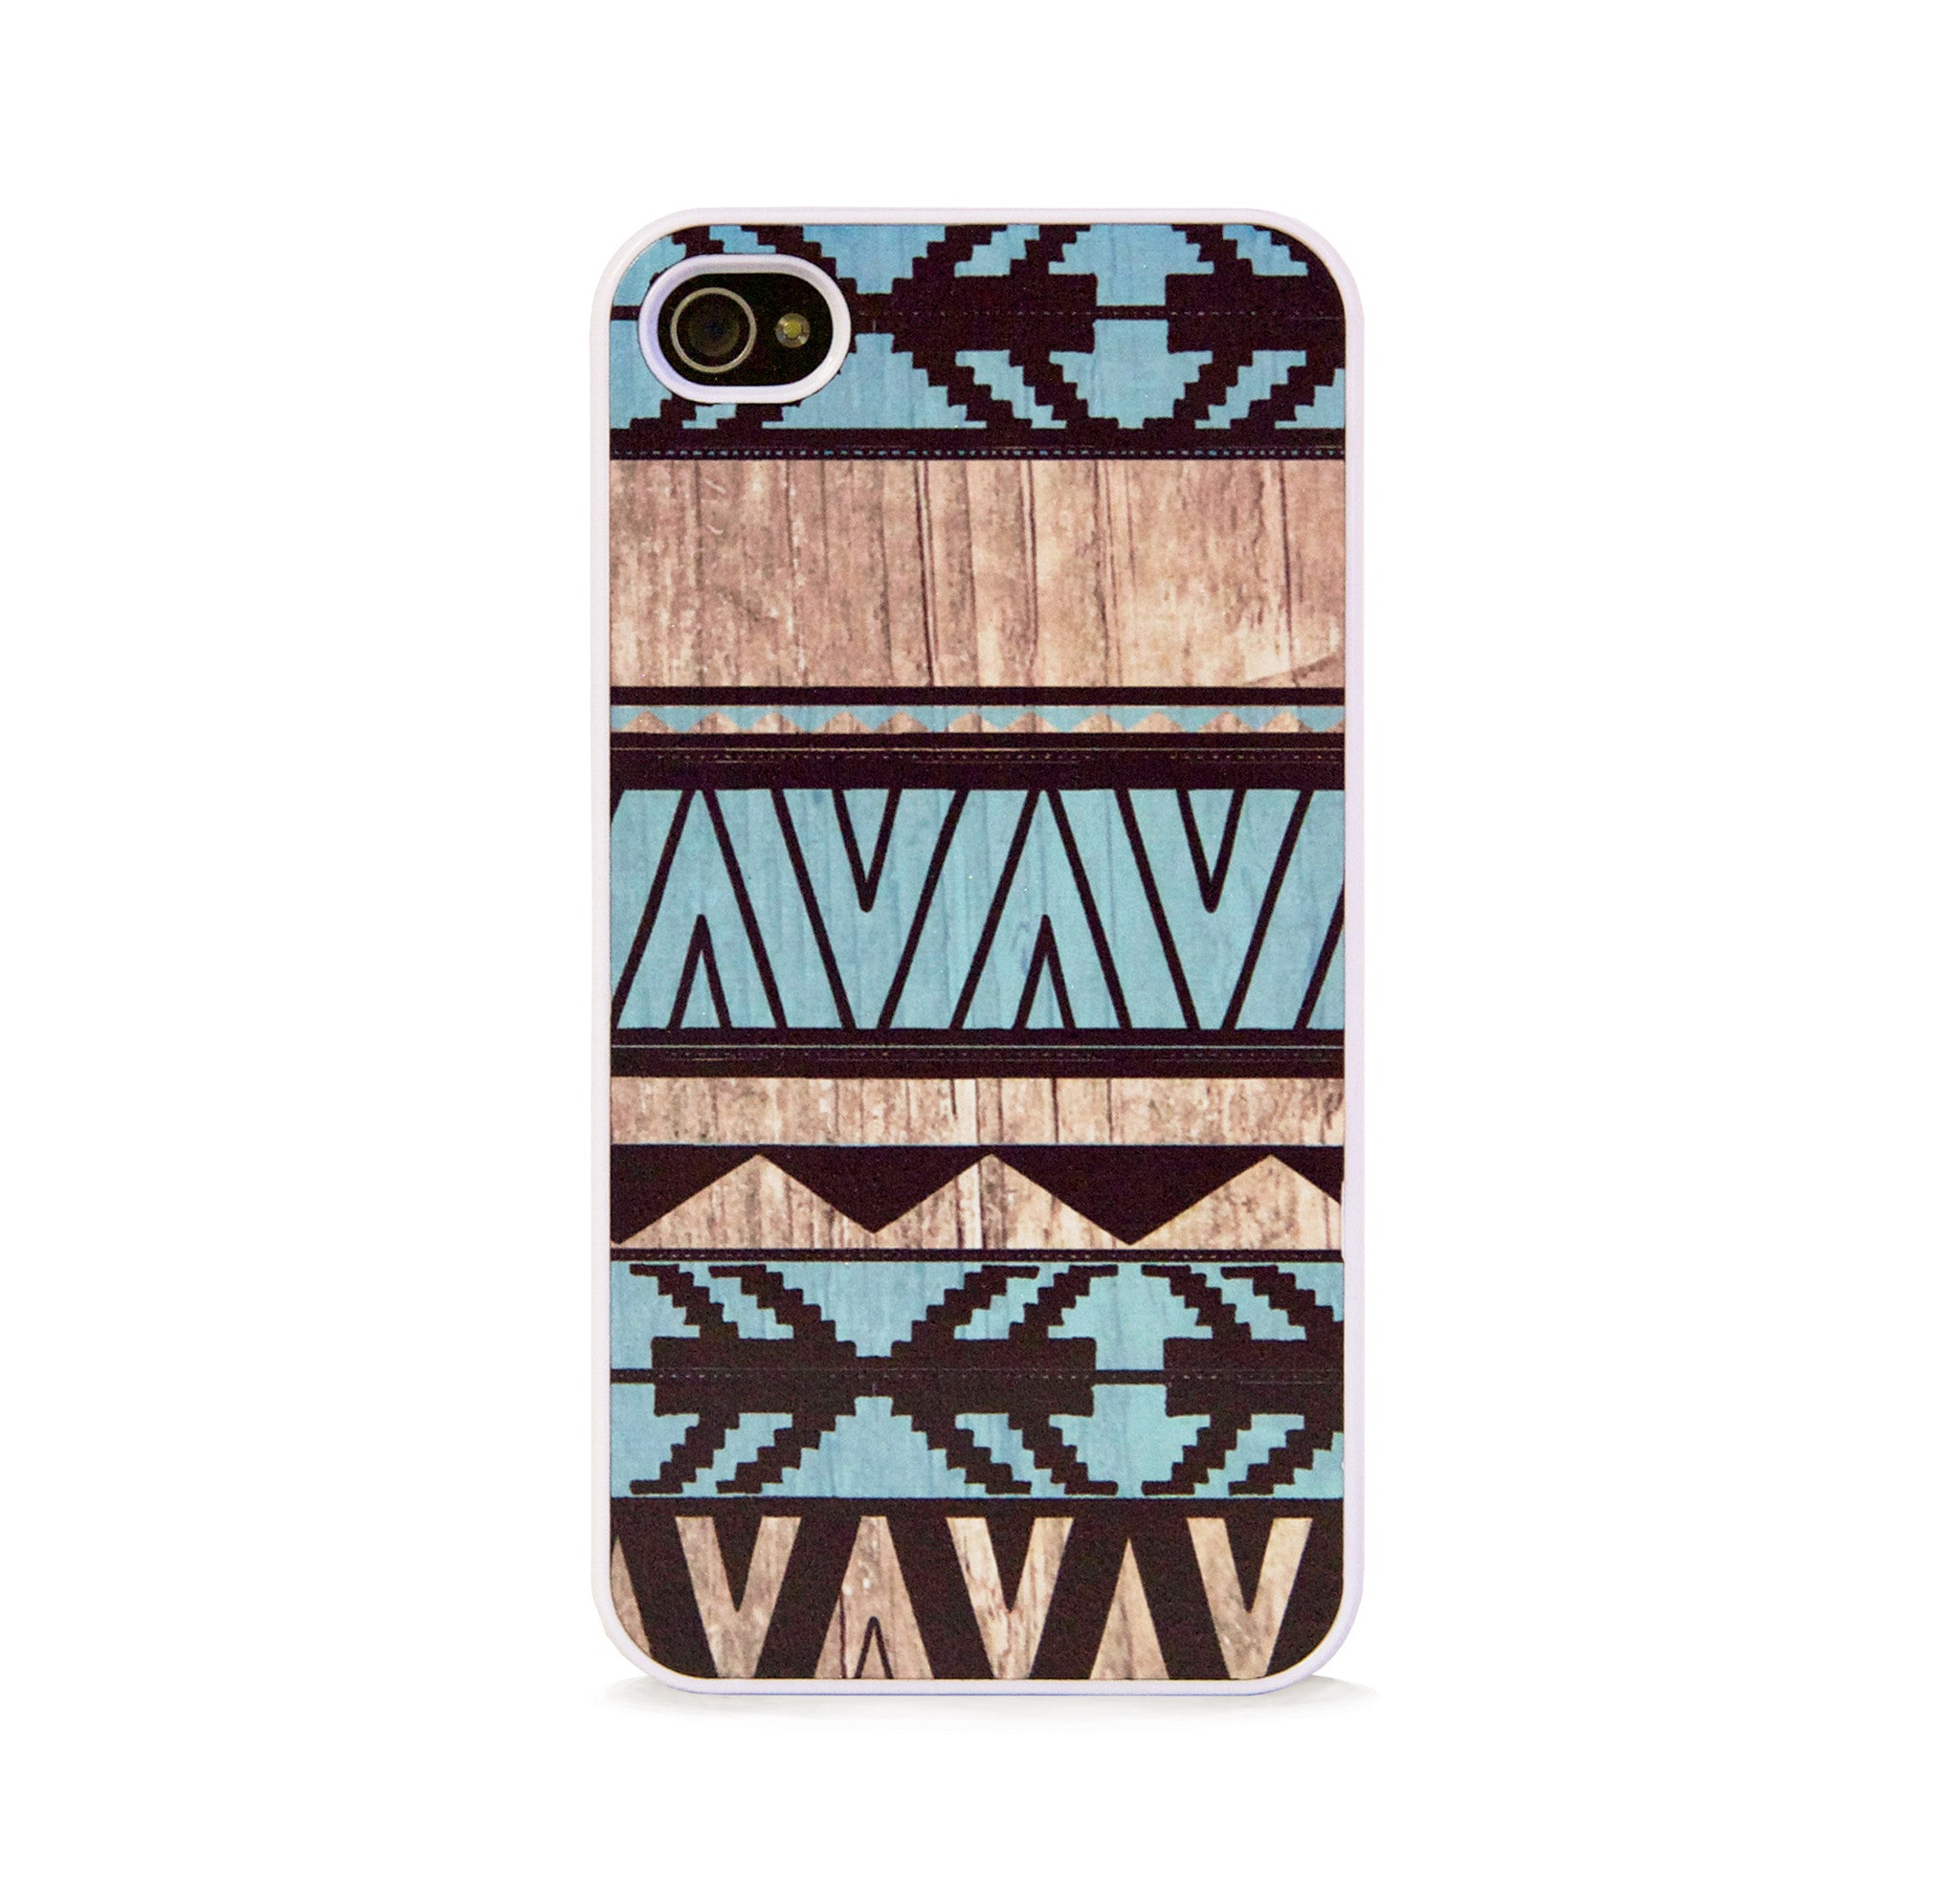 AZTEC GEO MINT WOOD FOR IPHONE 4/4S